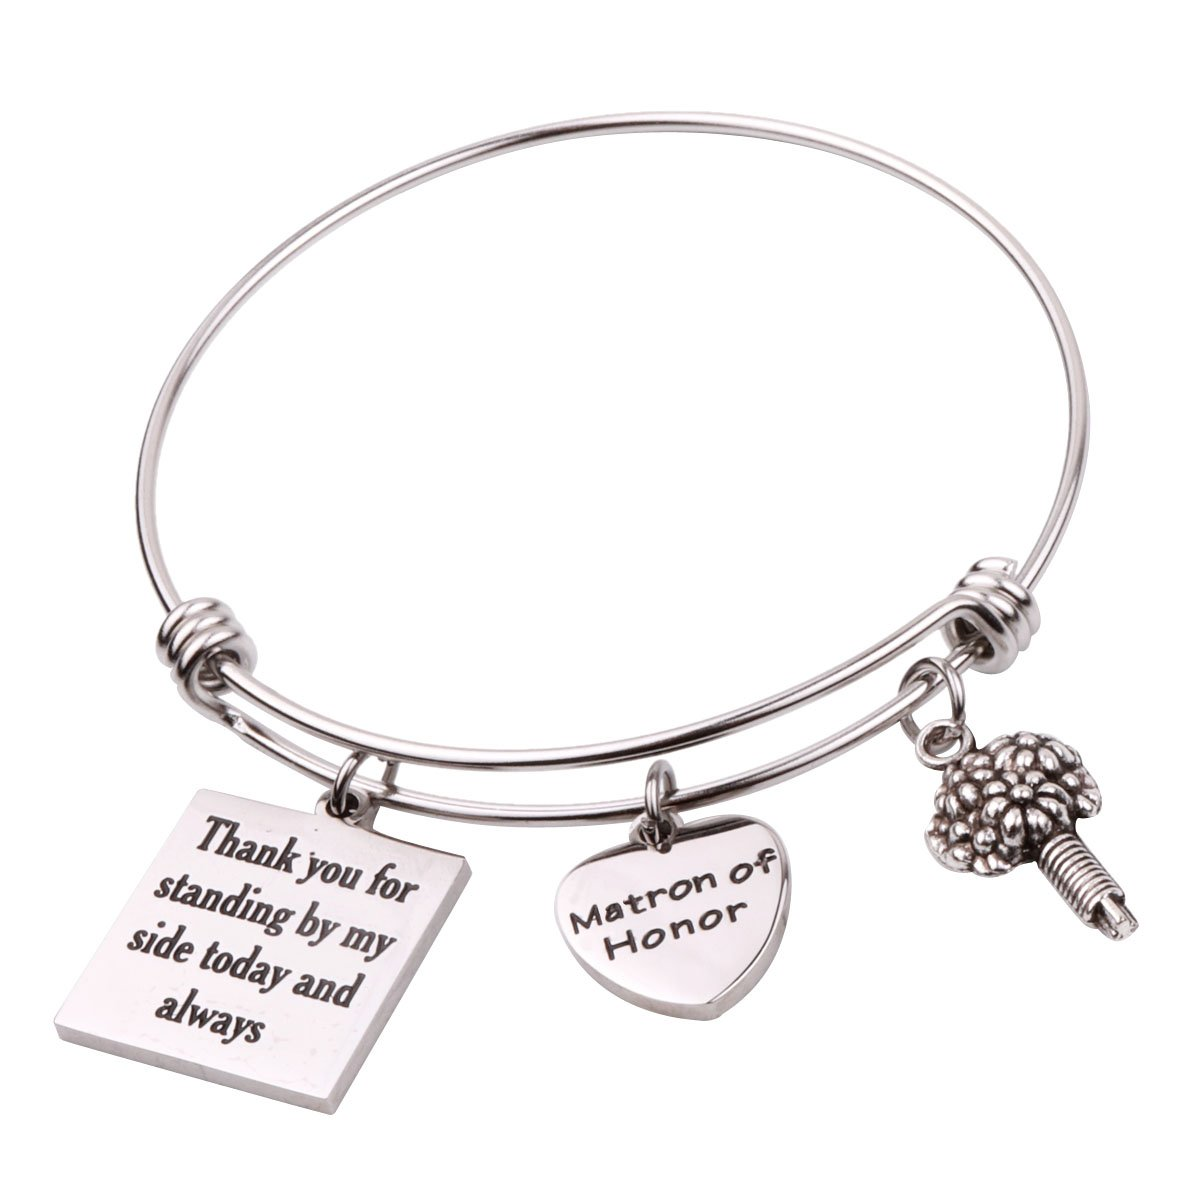 REEBOOO Matron of Honor Gift Matron of honor Jewellery Bridesmaid bracelet (Matron of Honor Bracelet)